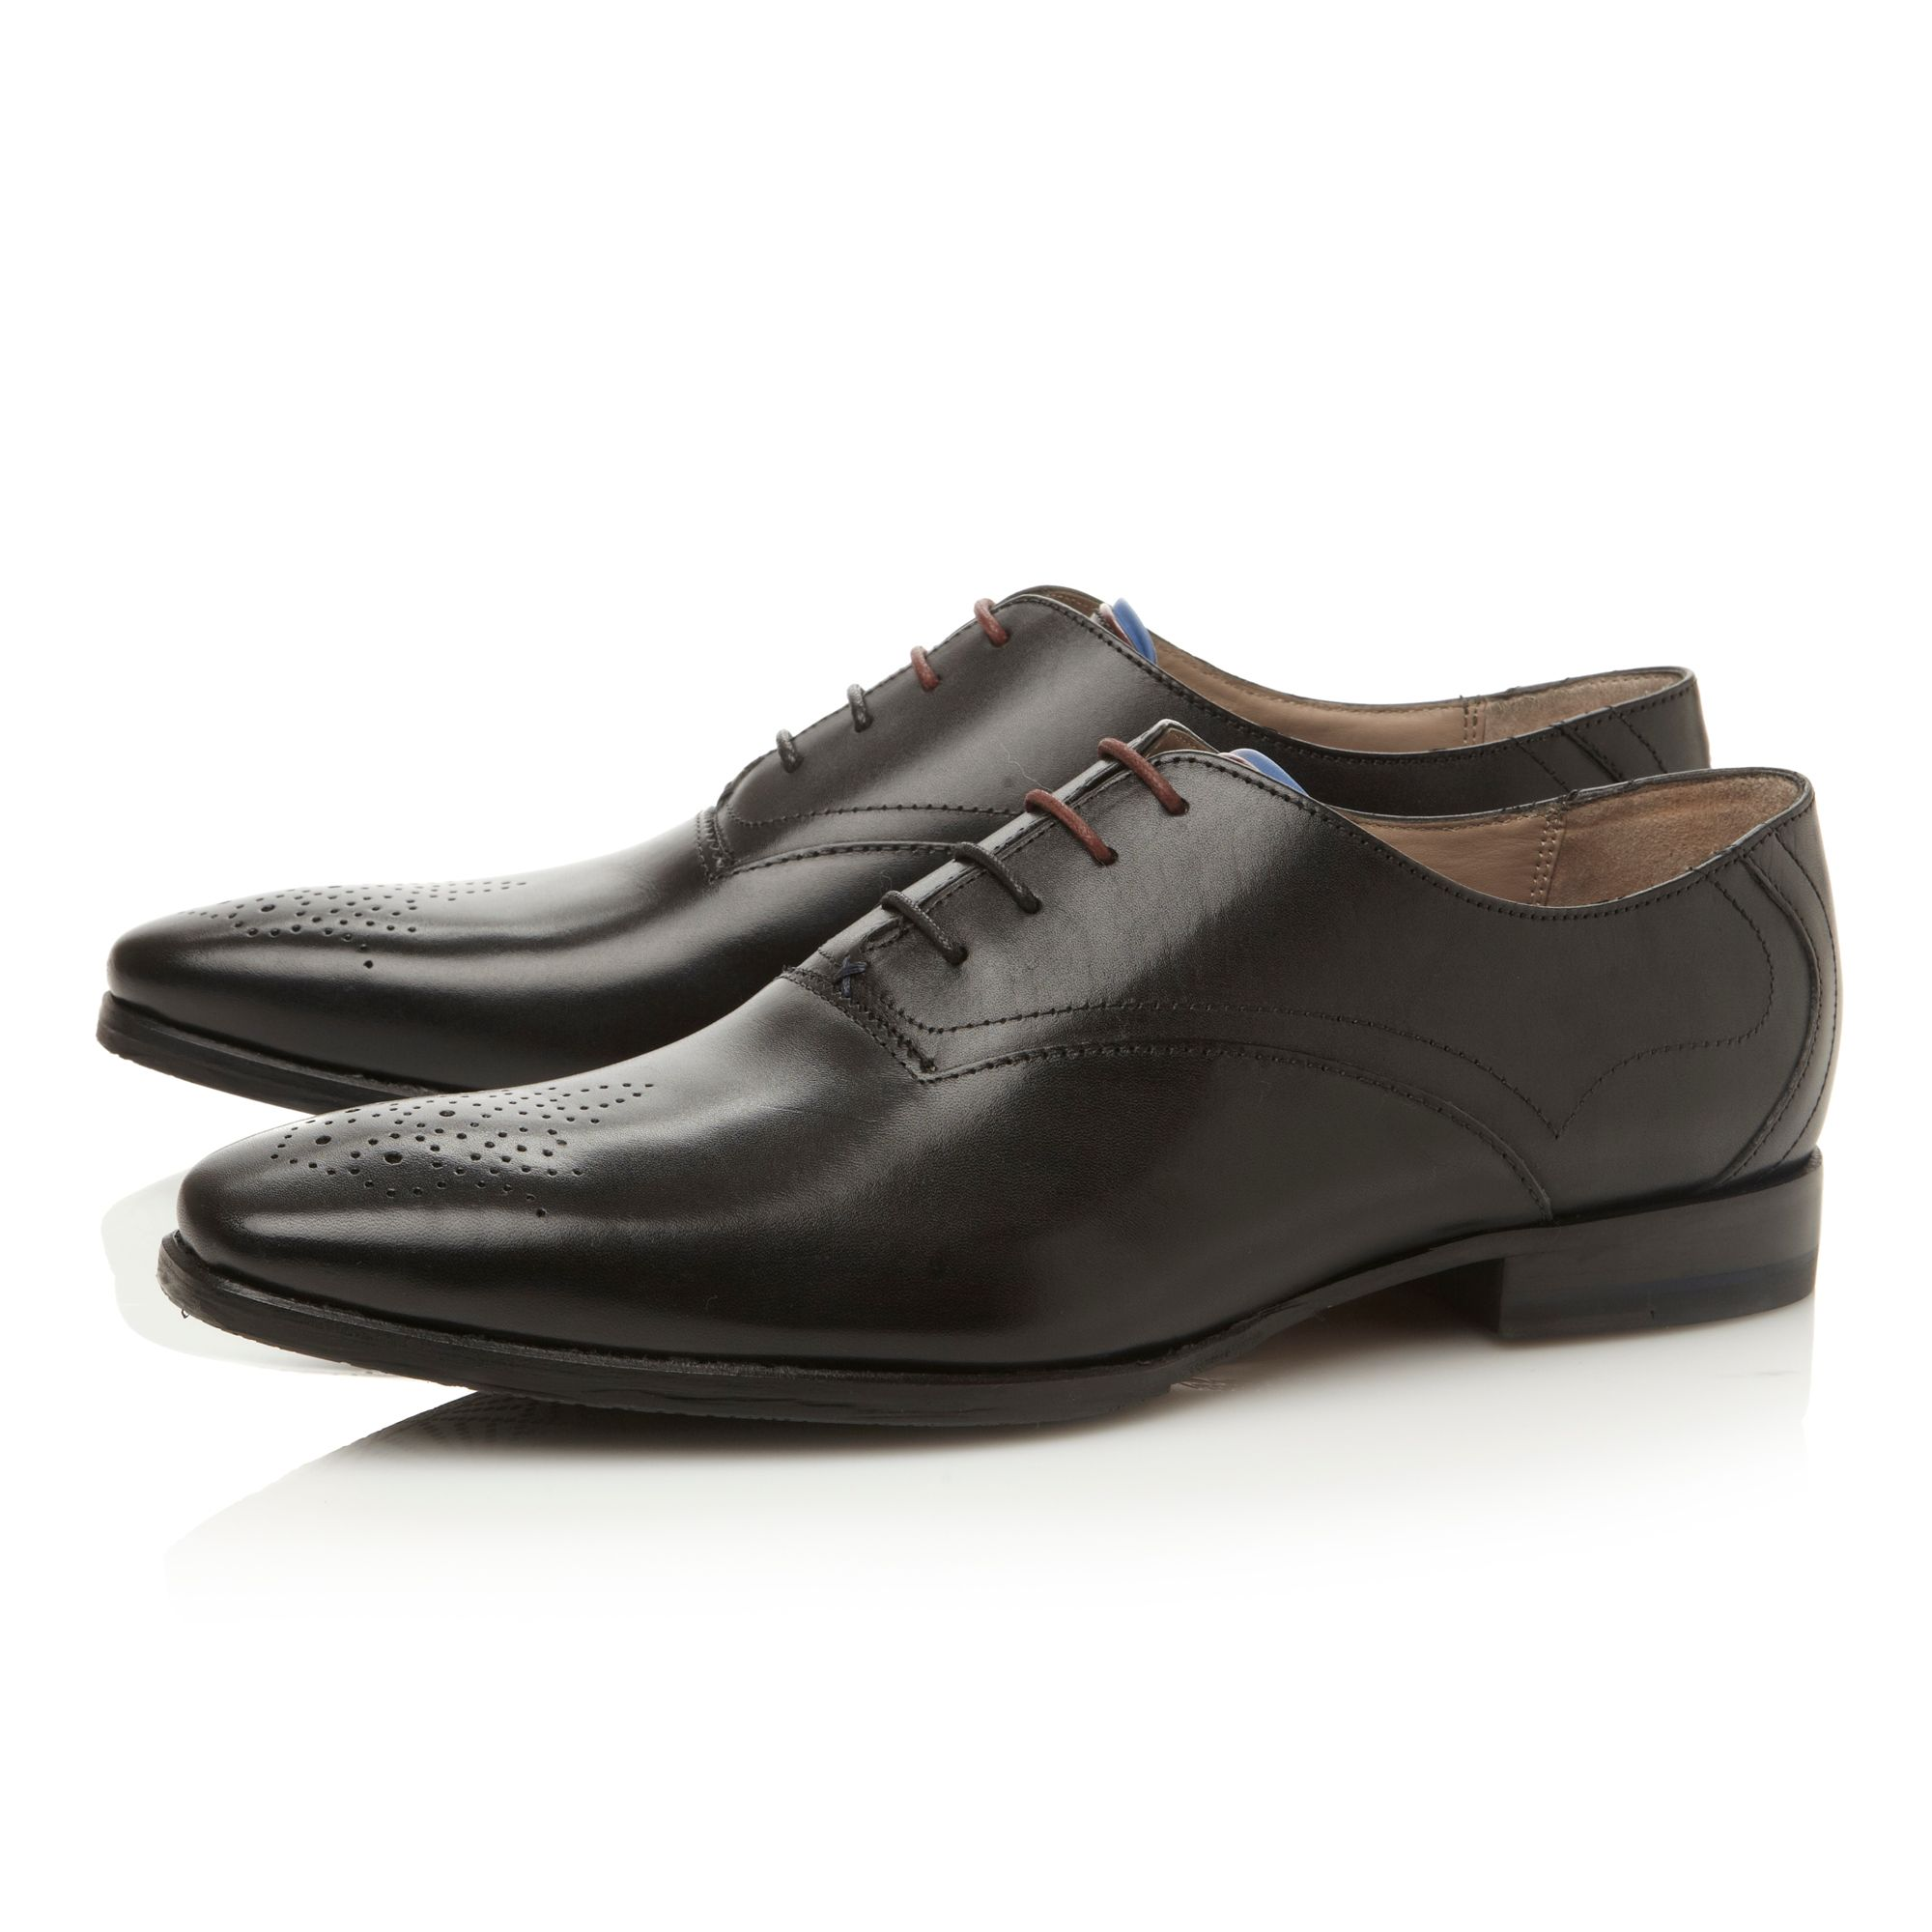 Belair brogue toe oxford shoes